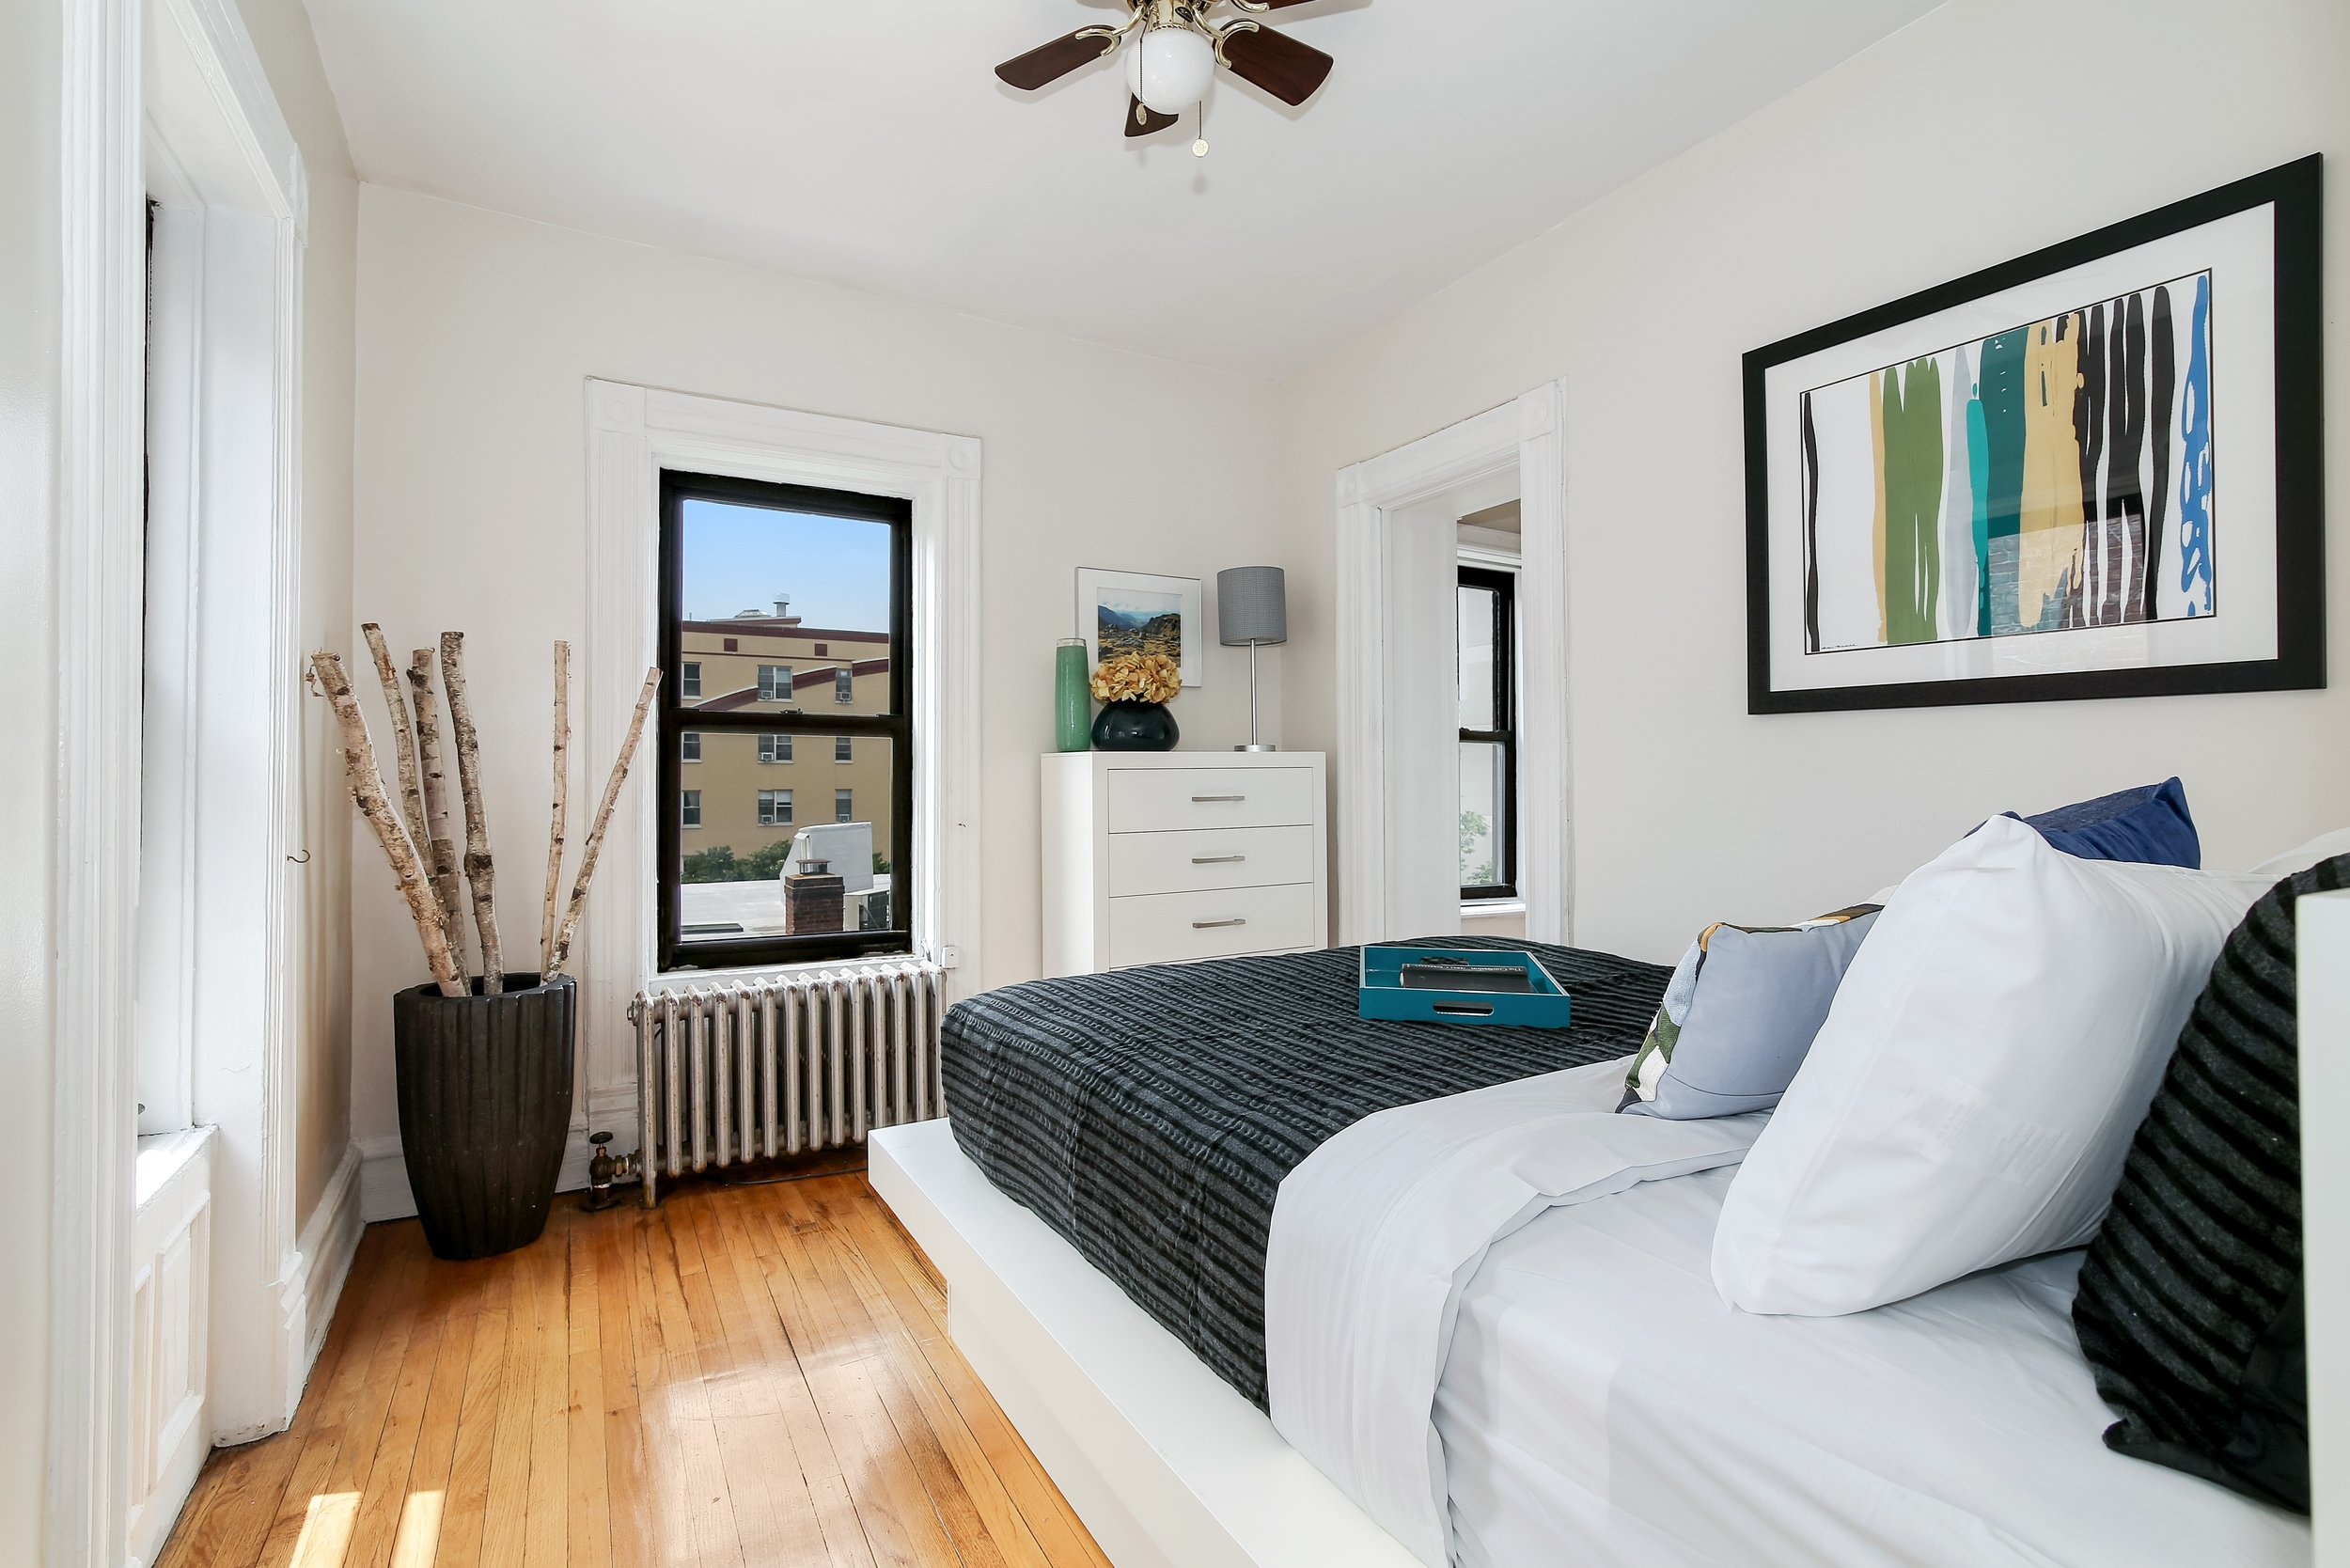 184 Clinton Ave Bedroom.jpg